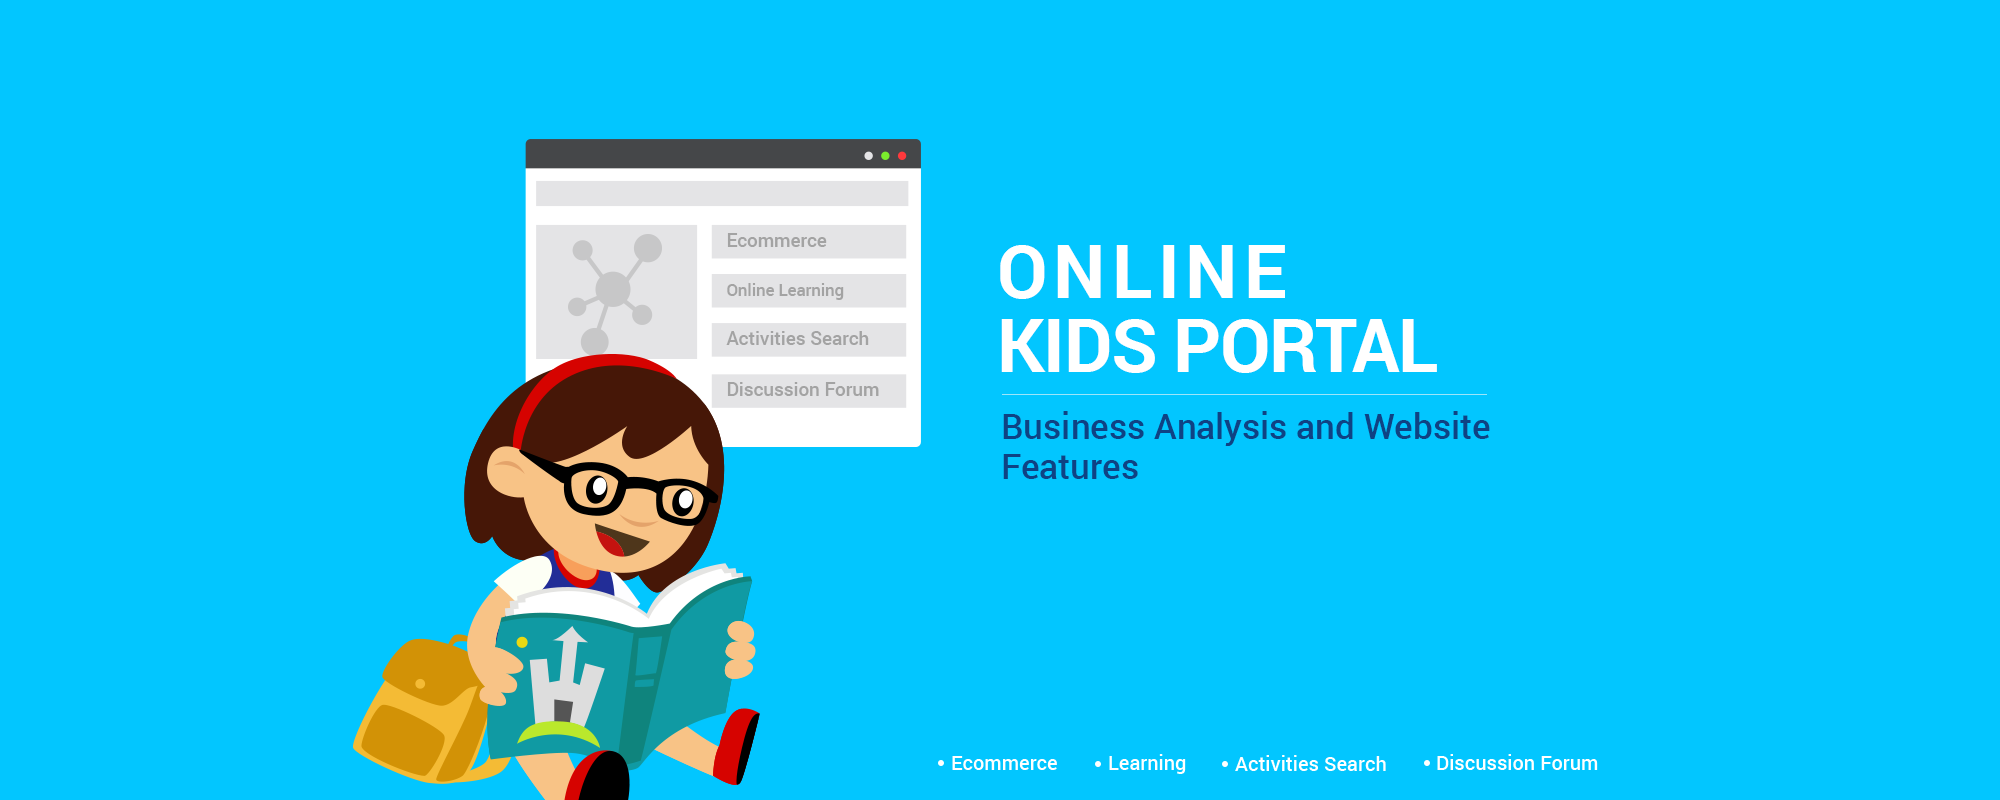 Business Model & Website Features of Online Portal for Kids and Parents